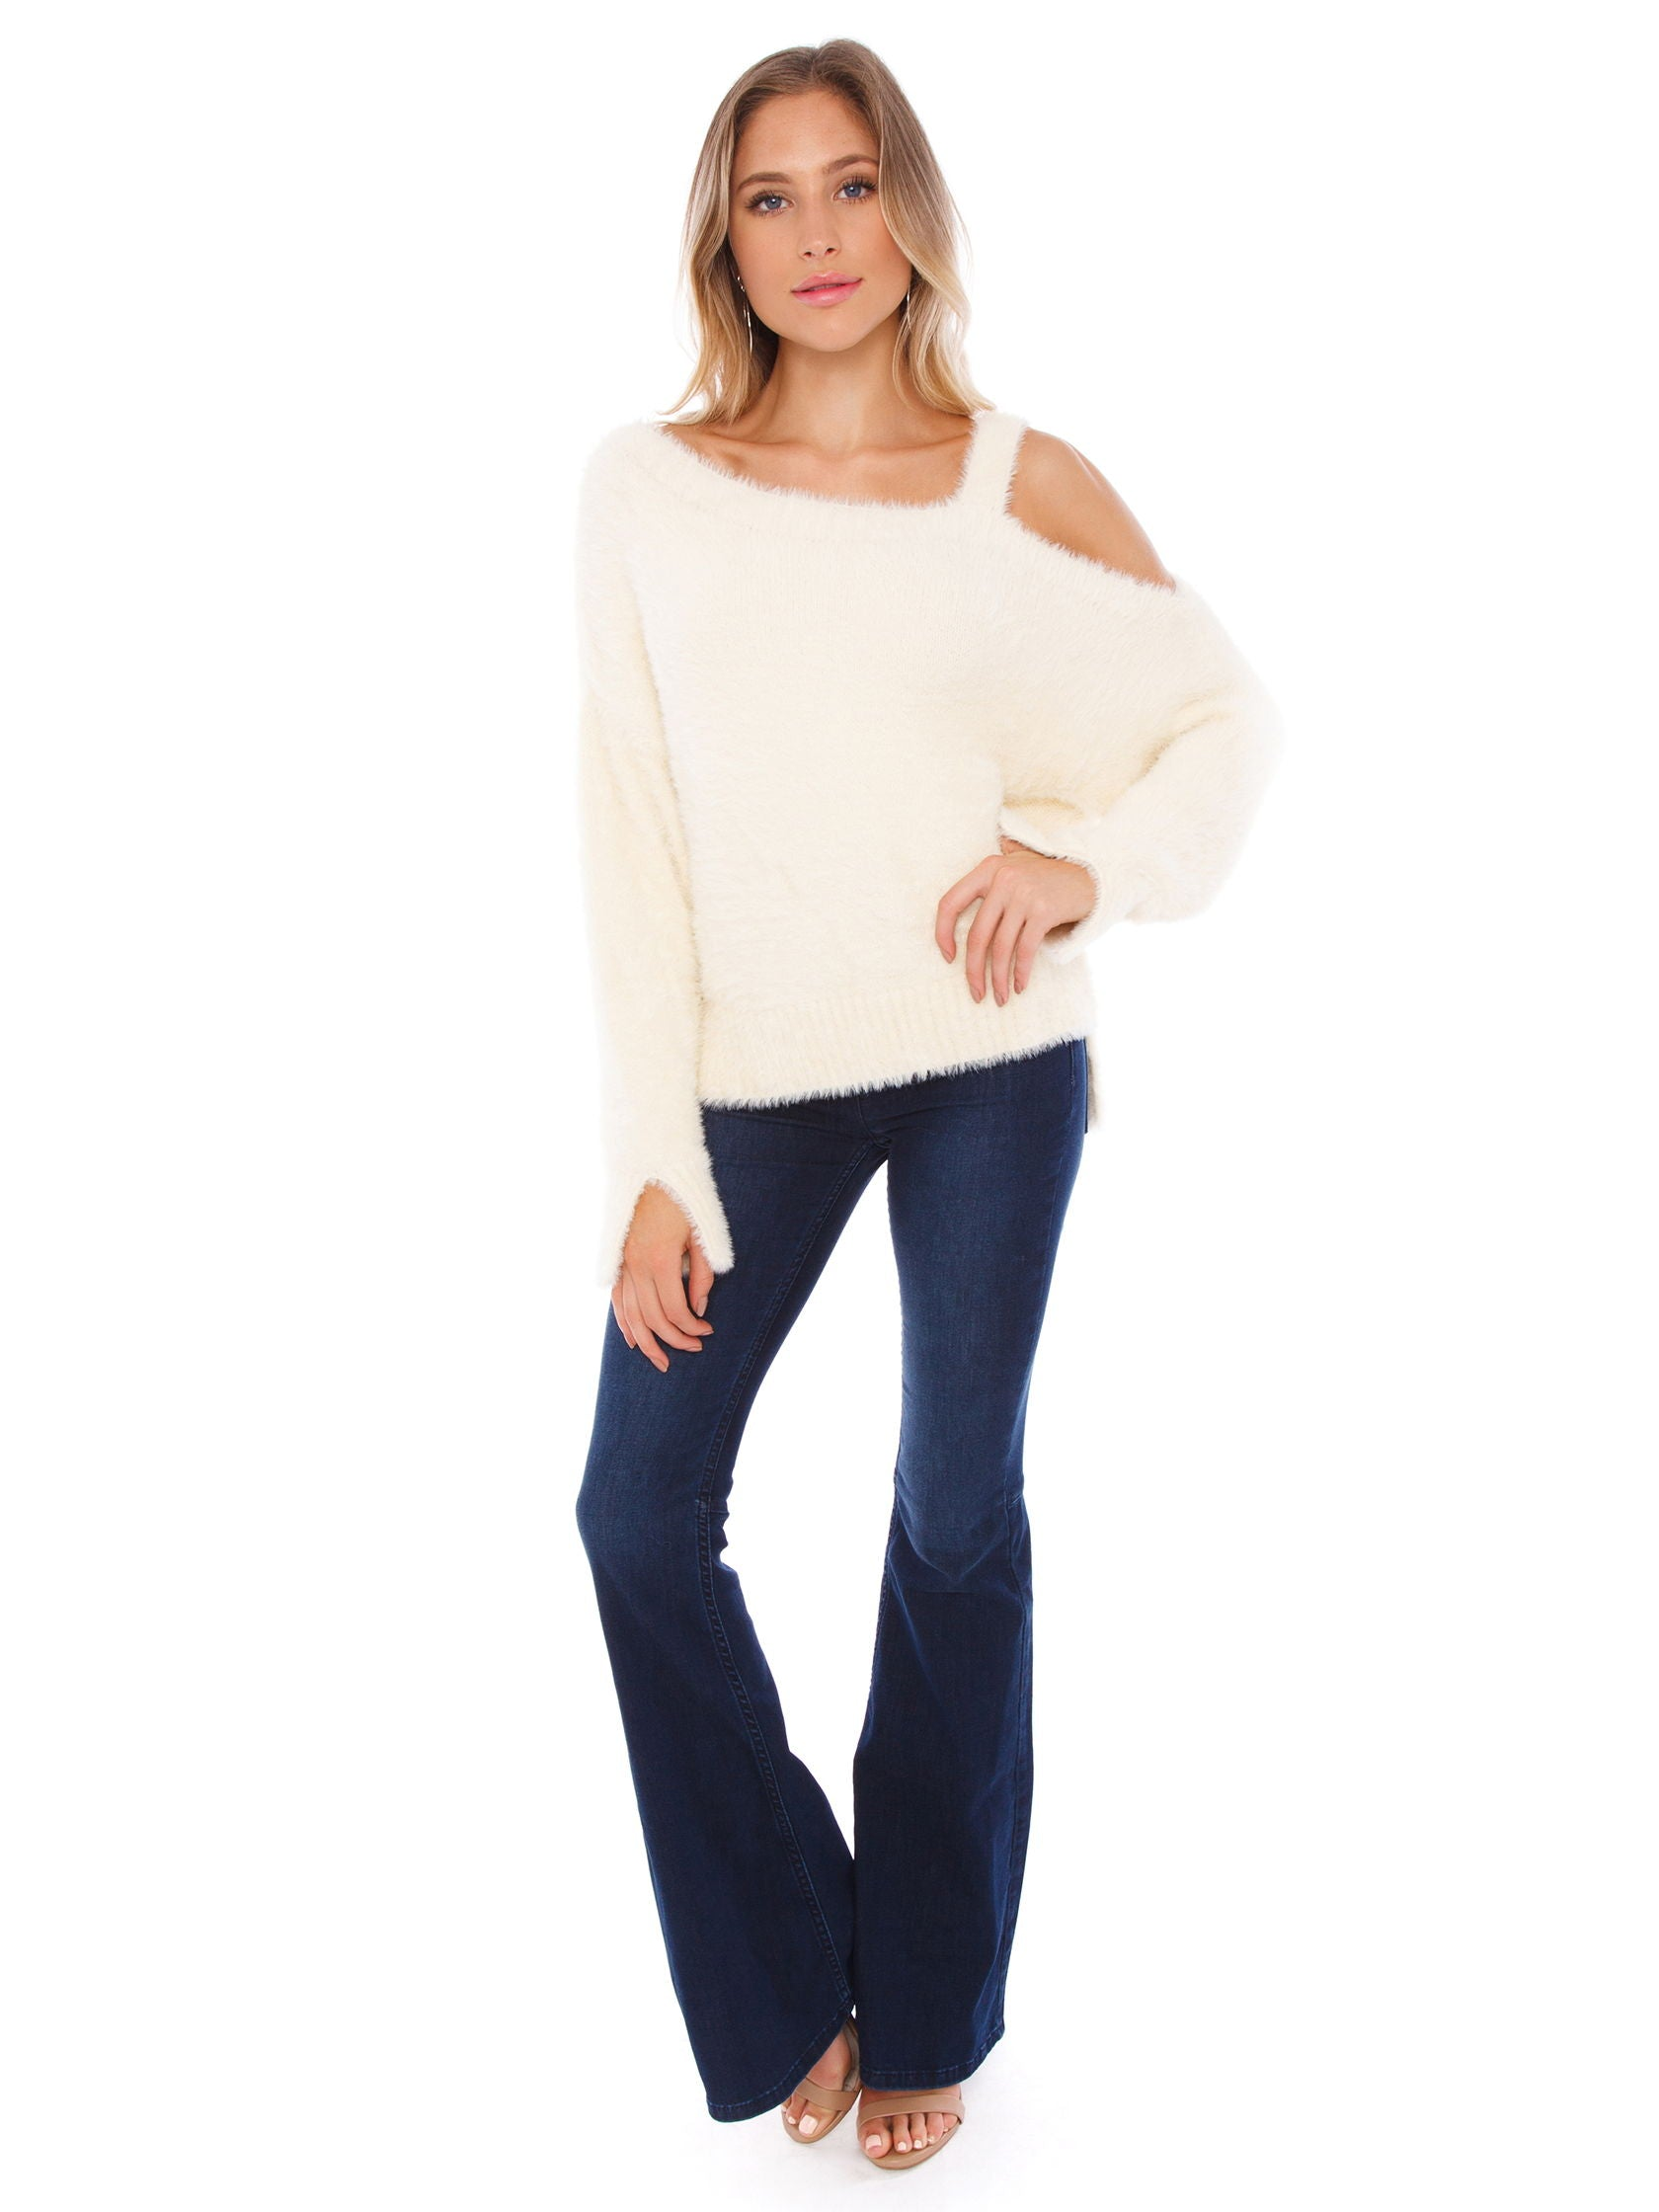 Girl wearing a sweater rental from FashionPass called Amy Cold Shoulder Sweater